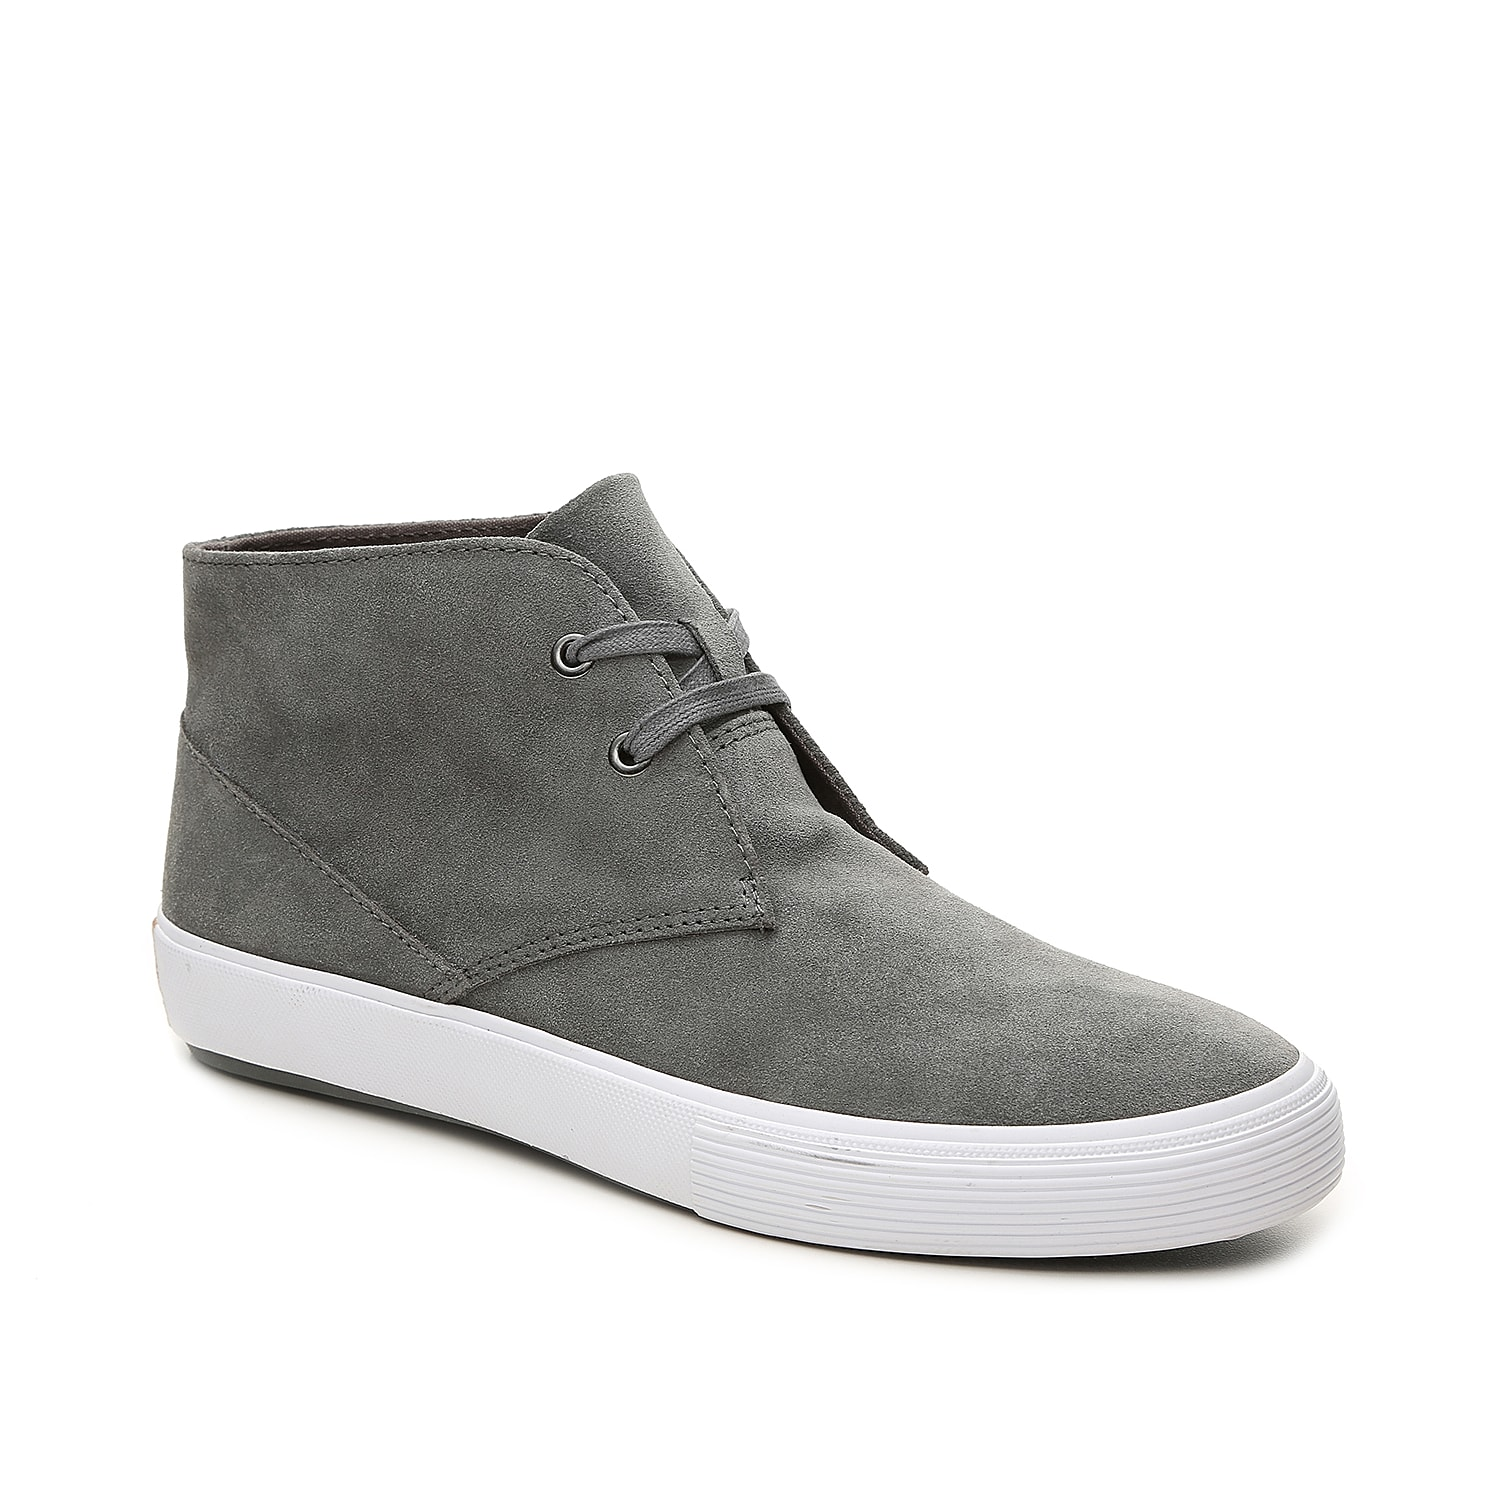 For a chukka boot-inspired design, try the 2Eye sneaker from Joe\\\'s. Pair this high-top with casual wear for a smooth, street style look that will turn heads!